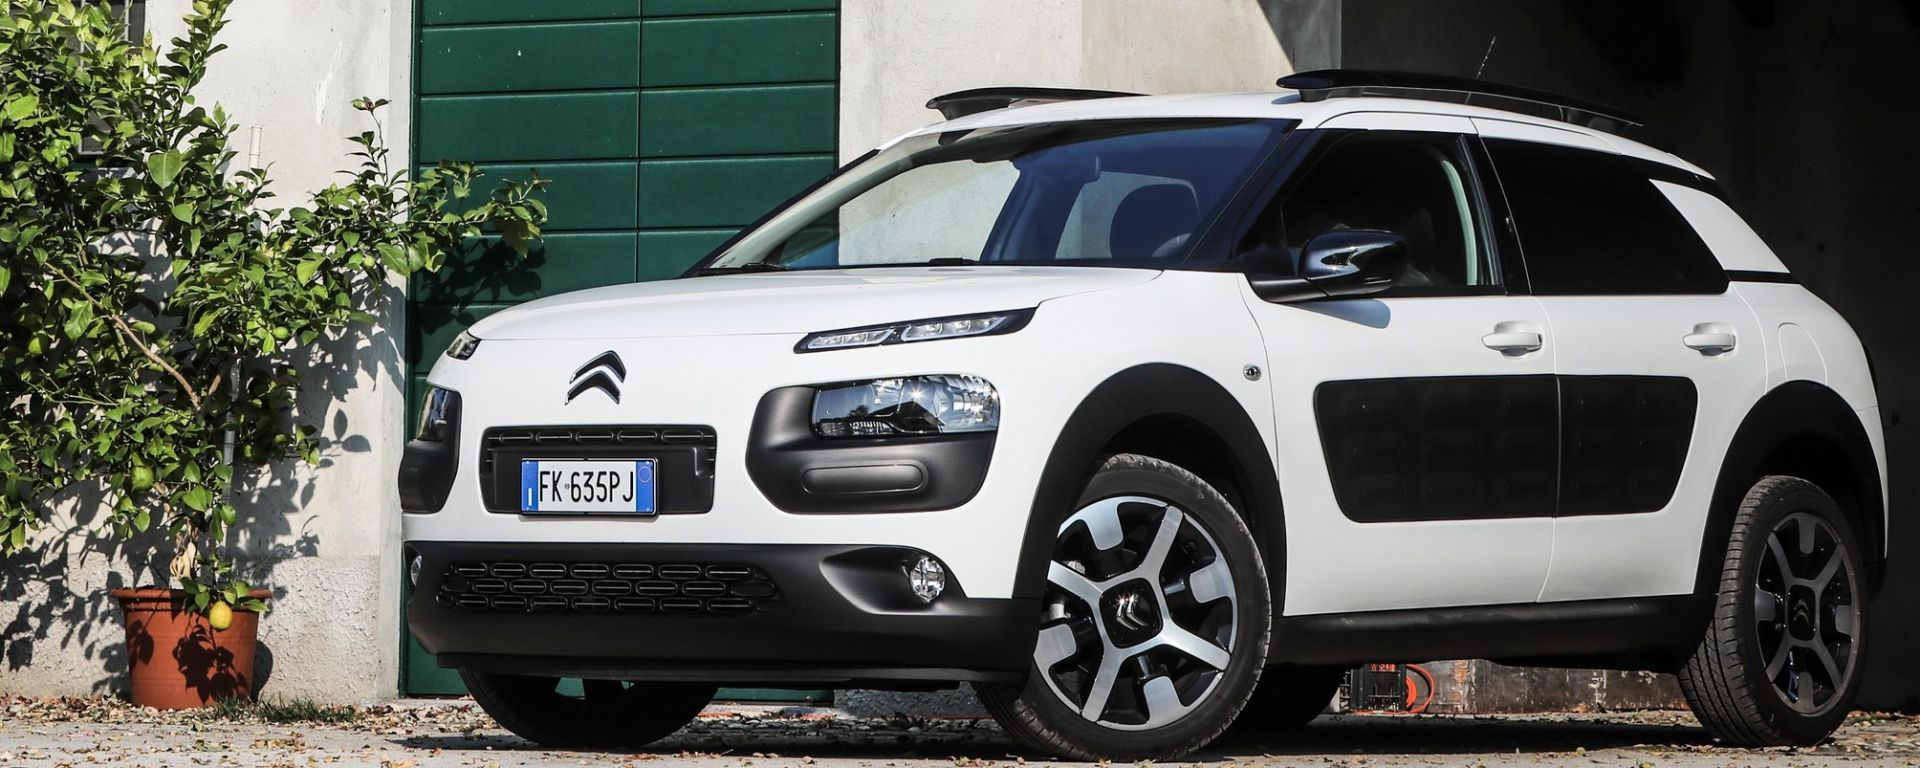 citroen c4 cactus la prova della 1 2 puretech benzina 110 cv eat6 shine motorbox. Black Bedroom Furniture Sets. Home Design Ideas